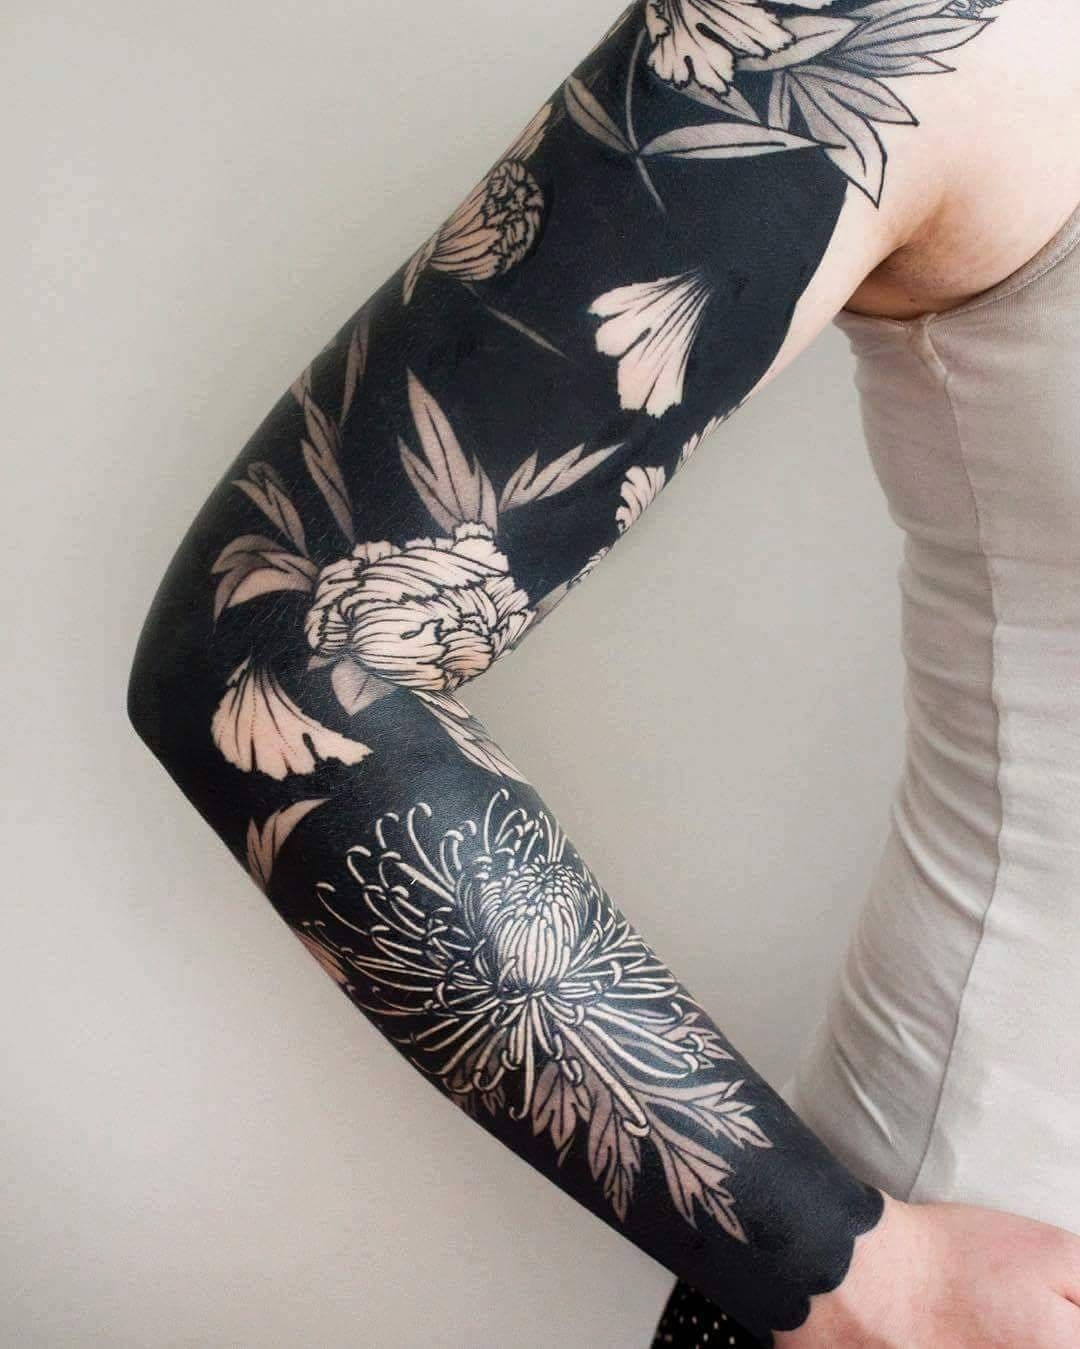 50 Cool Chrysanthemum Tattoo Designs - Great Way to Pass Your Message Across Check more at http://tattoo-journal.com/best-chrysanthemum-tattoo-designs-meaning/